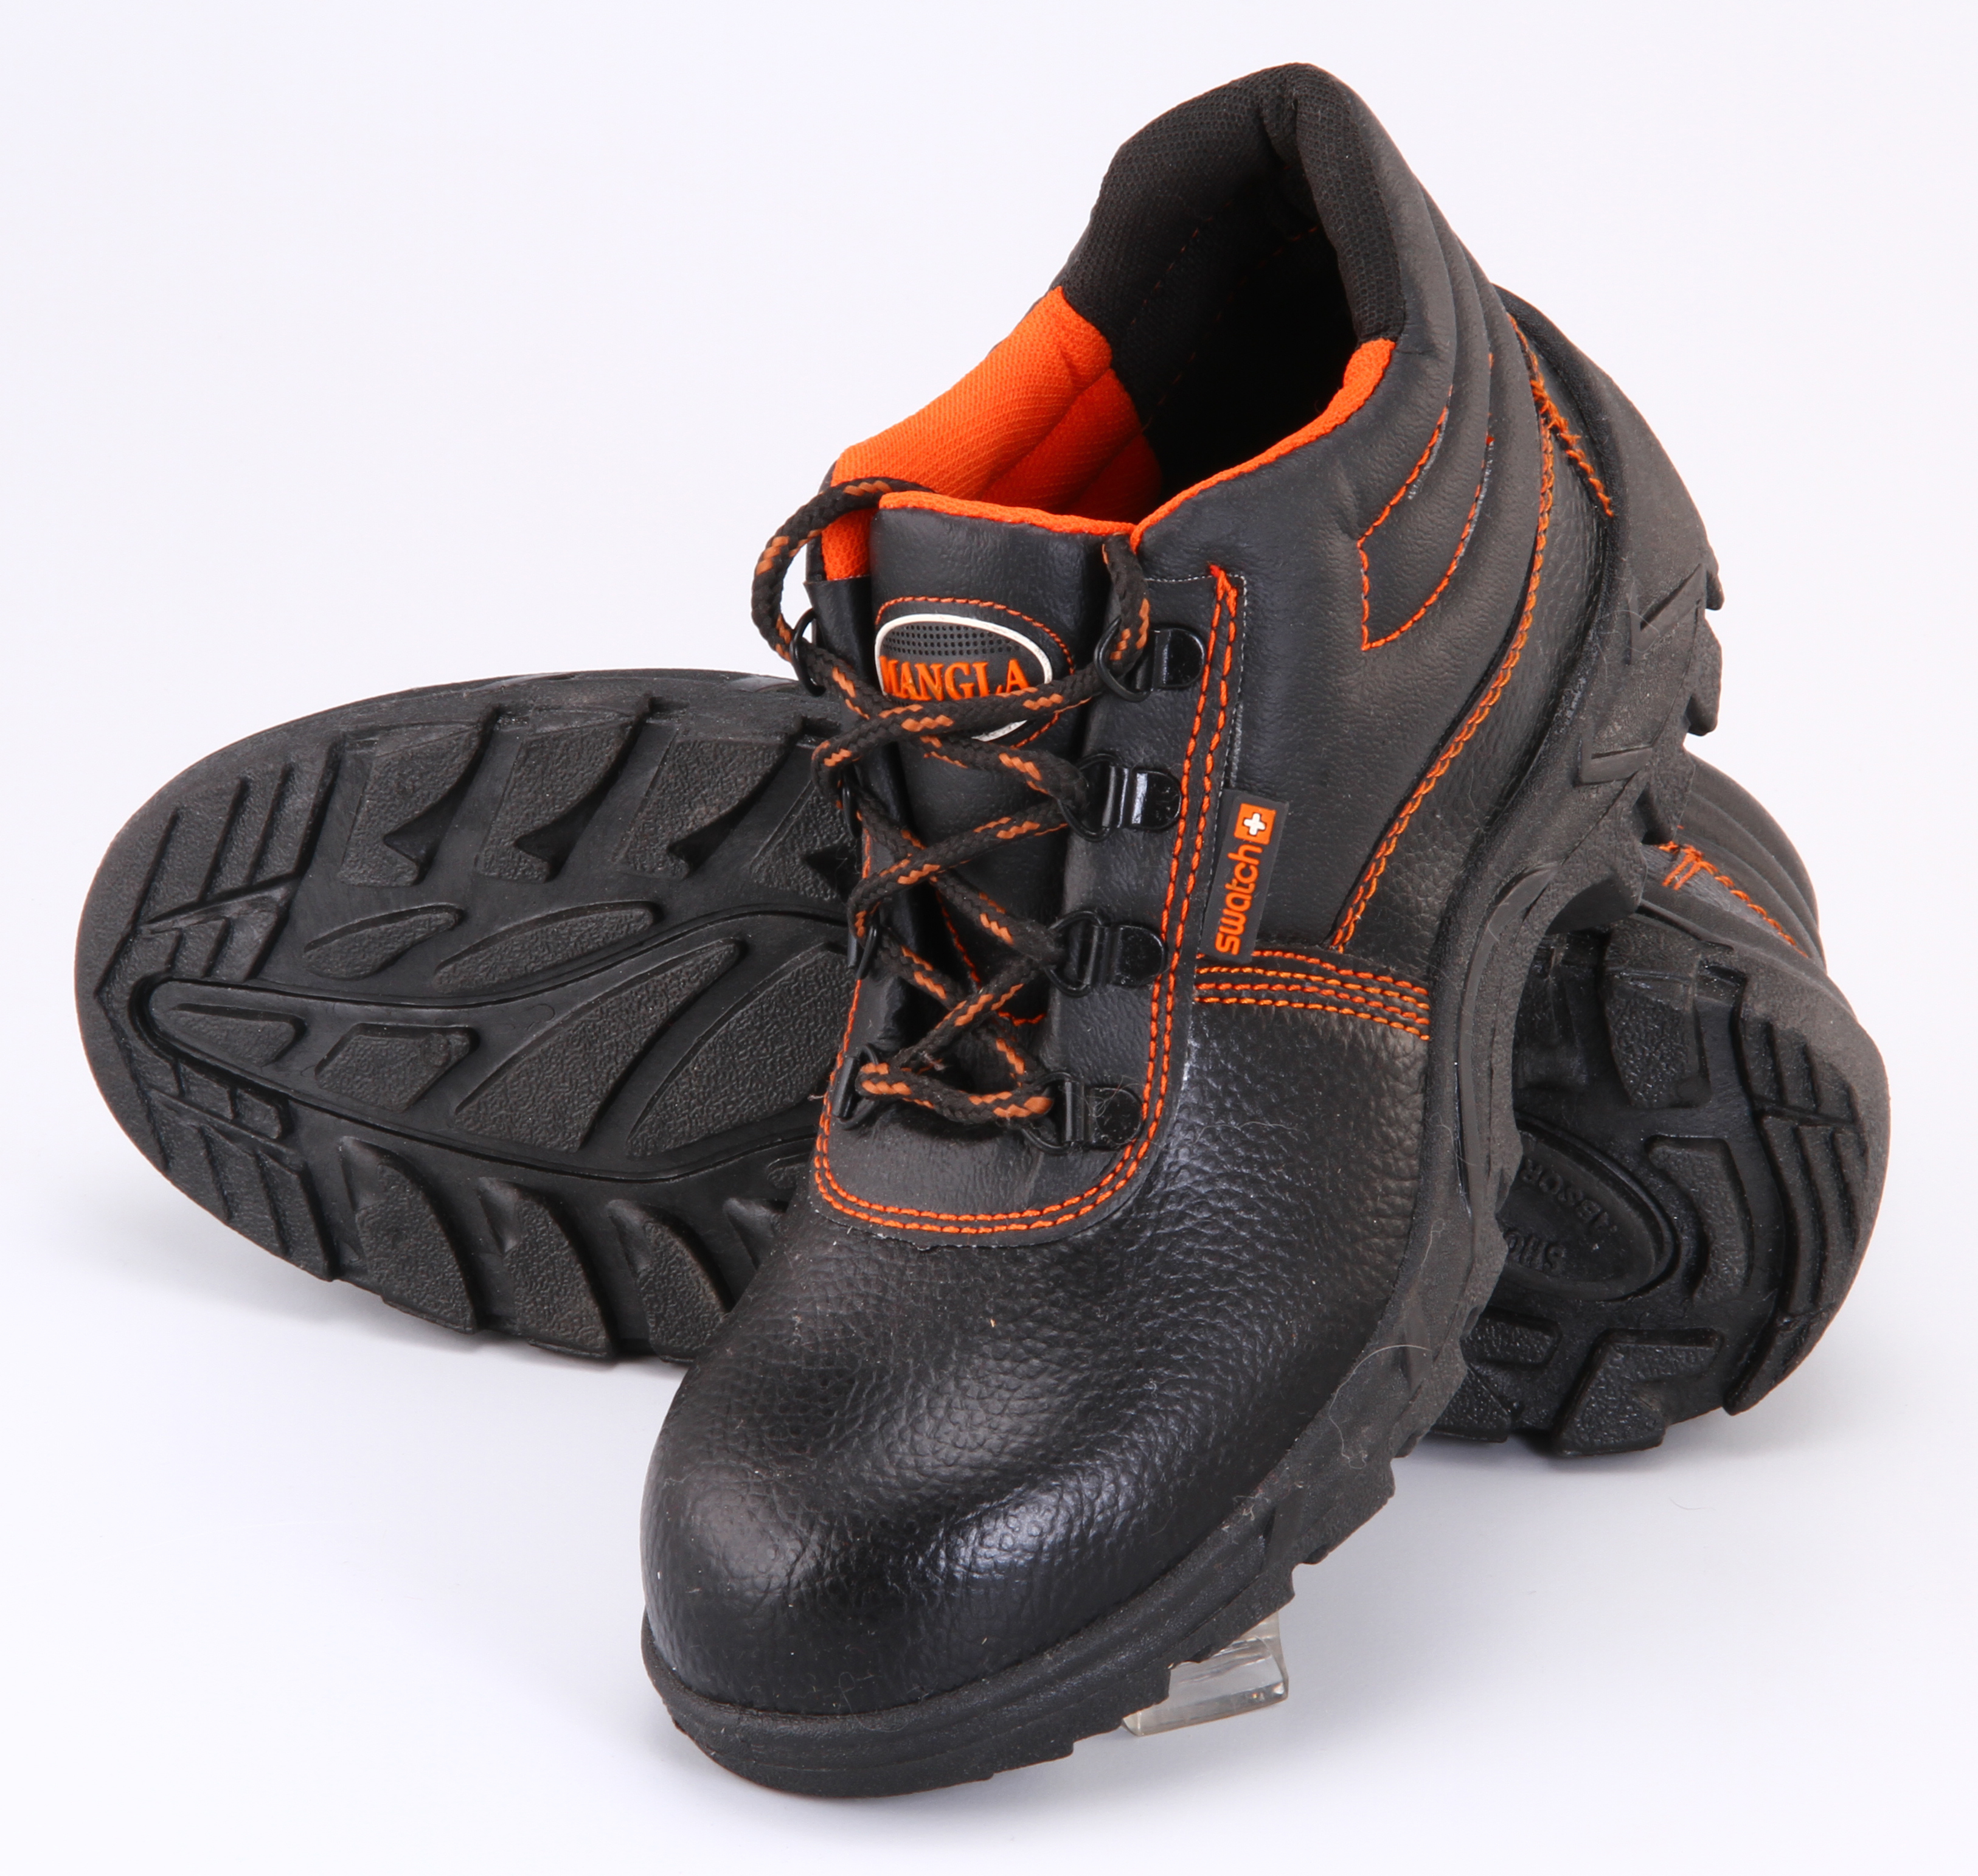 Swatch Safety Shoe